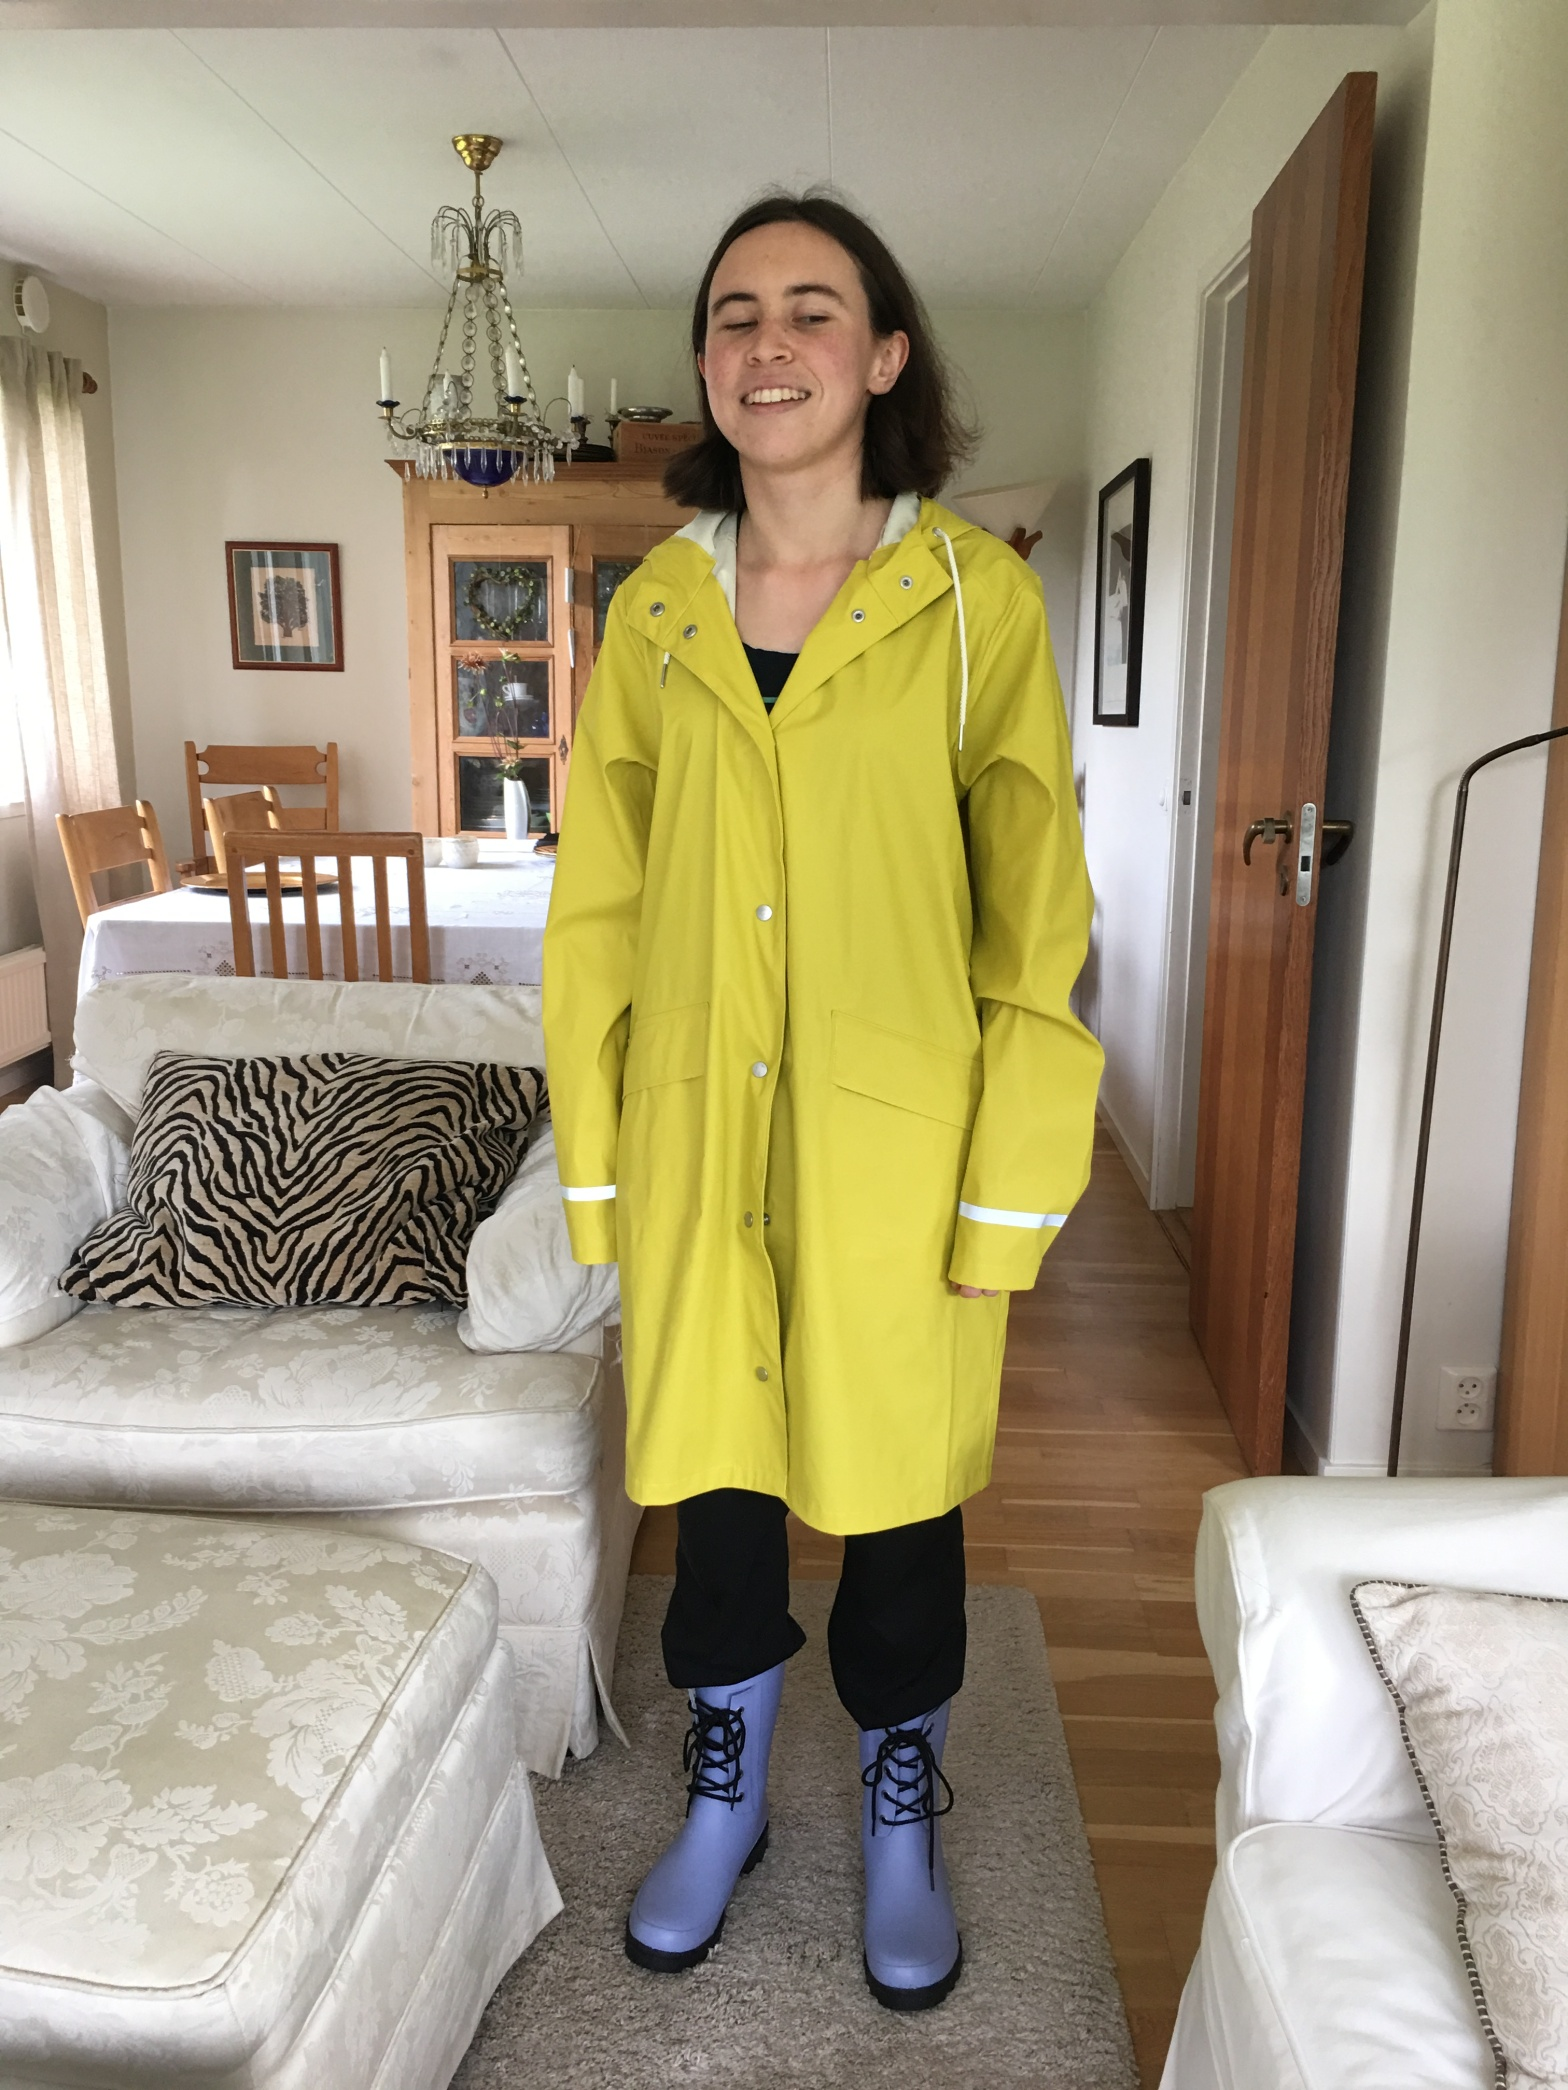 I, a European-presenting female, am standing in a knee-length yellow raincoat and gumboots.